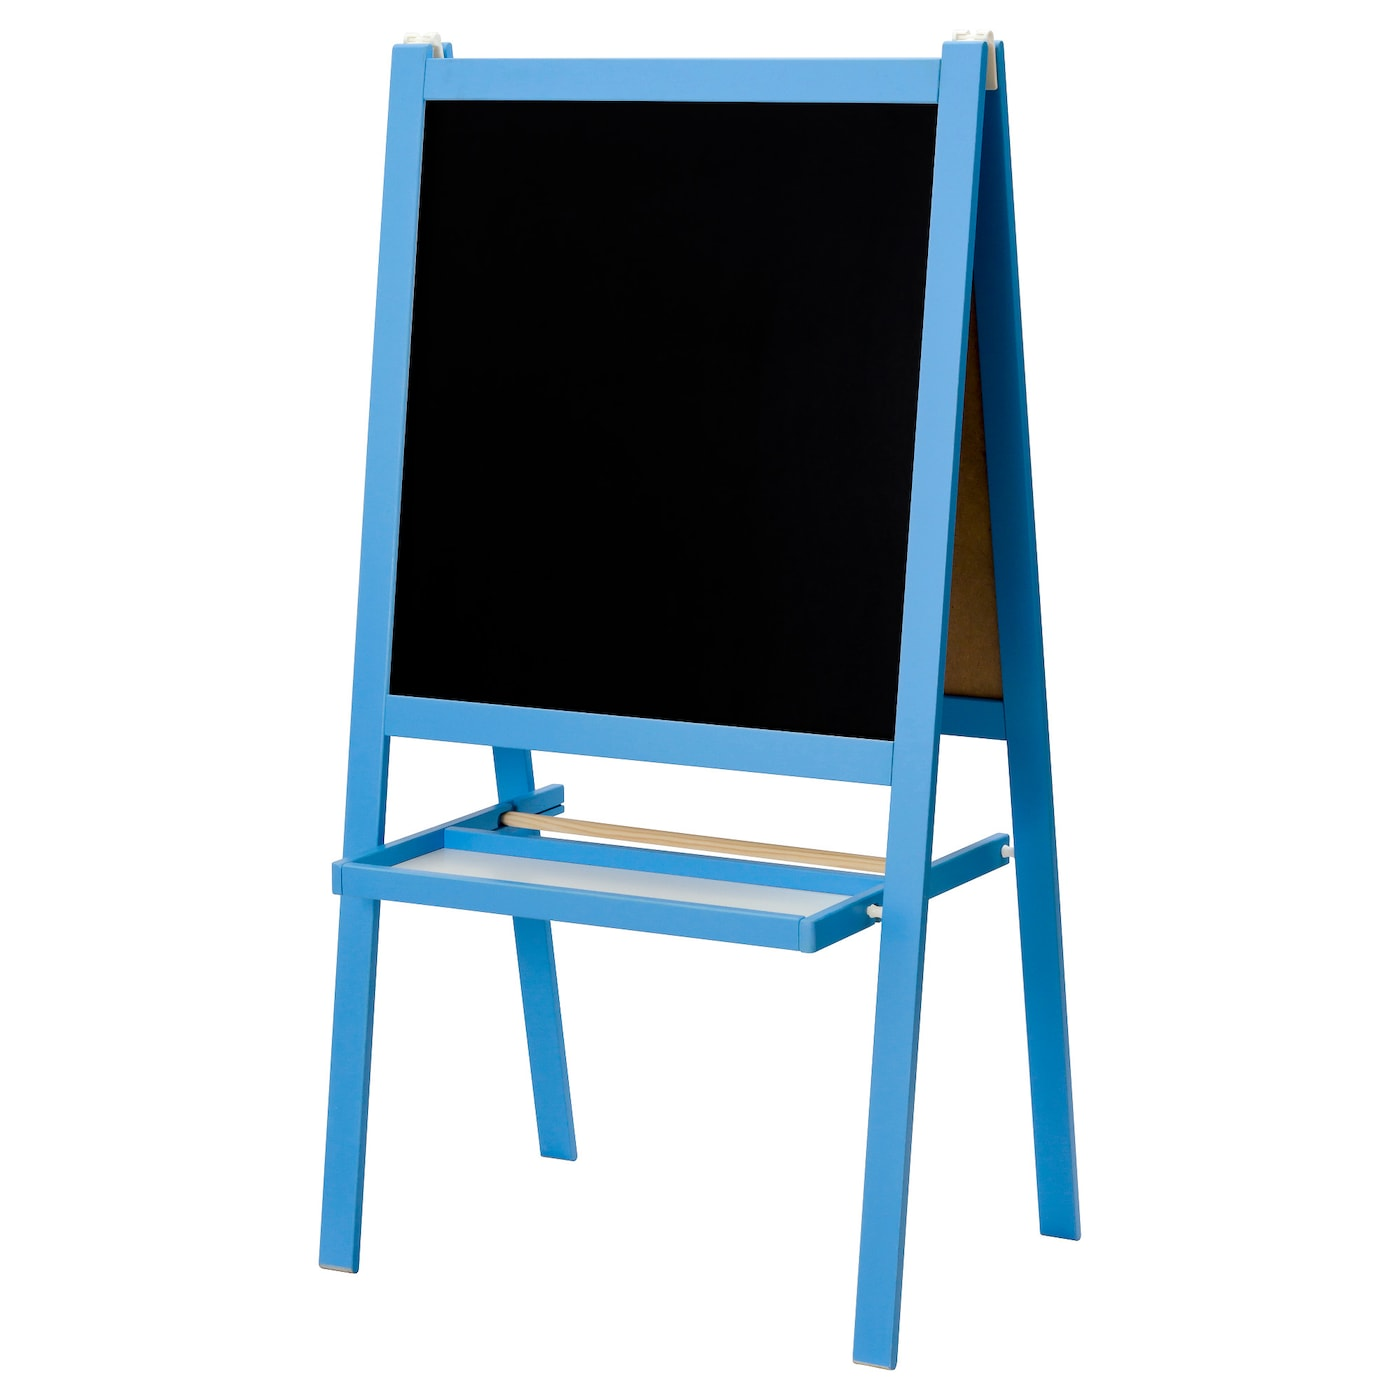 IKEA MÅLA easel Can be folded to save space when not in use.